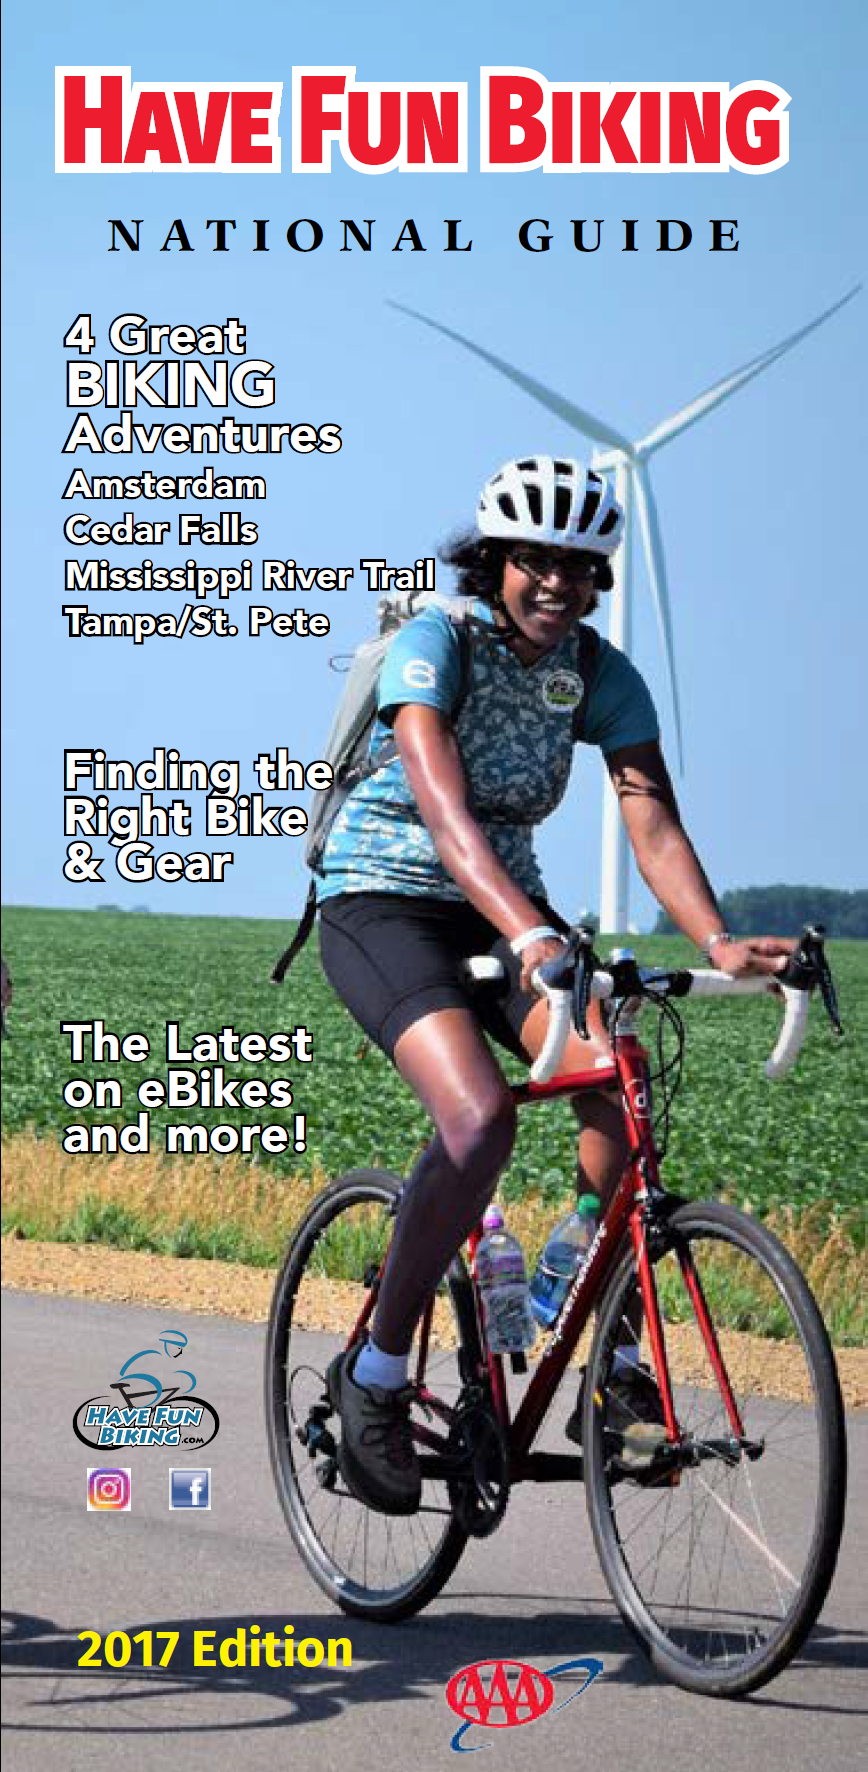 This new national bicycle guide offers bicyclists of all levels easily access the latest information on places to ride a bike, helpful tips and more.